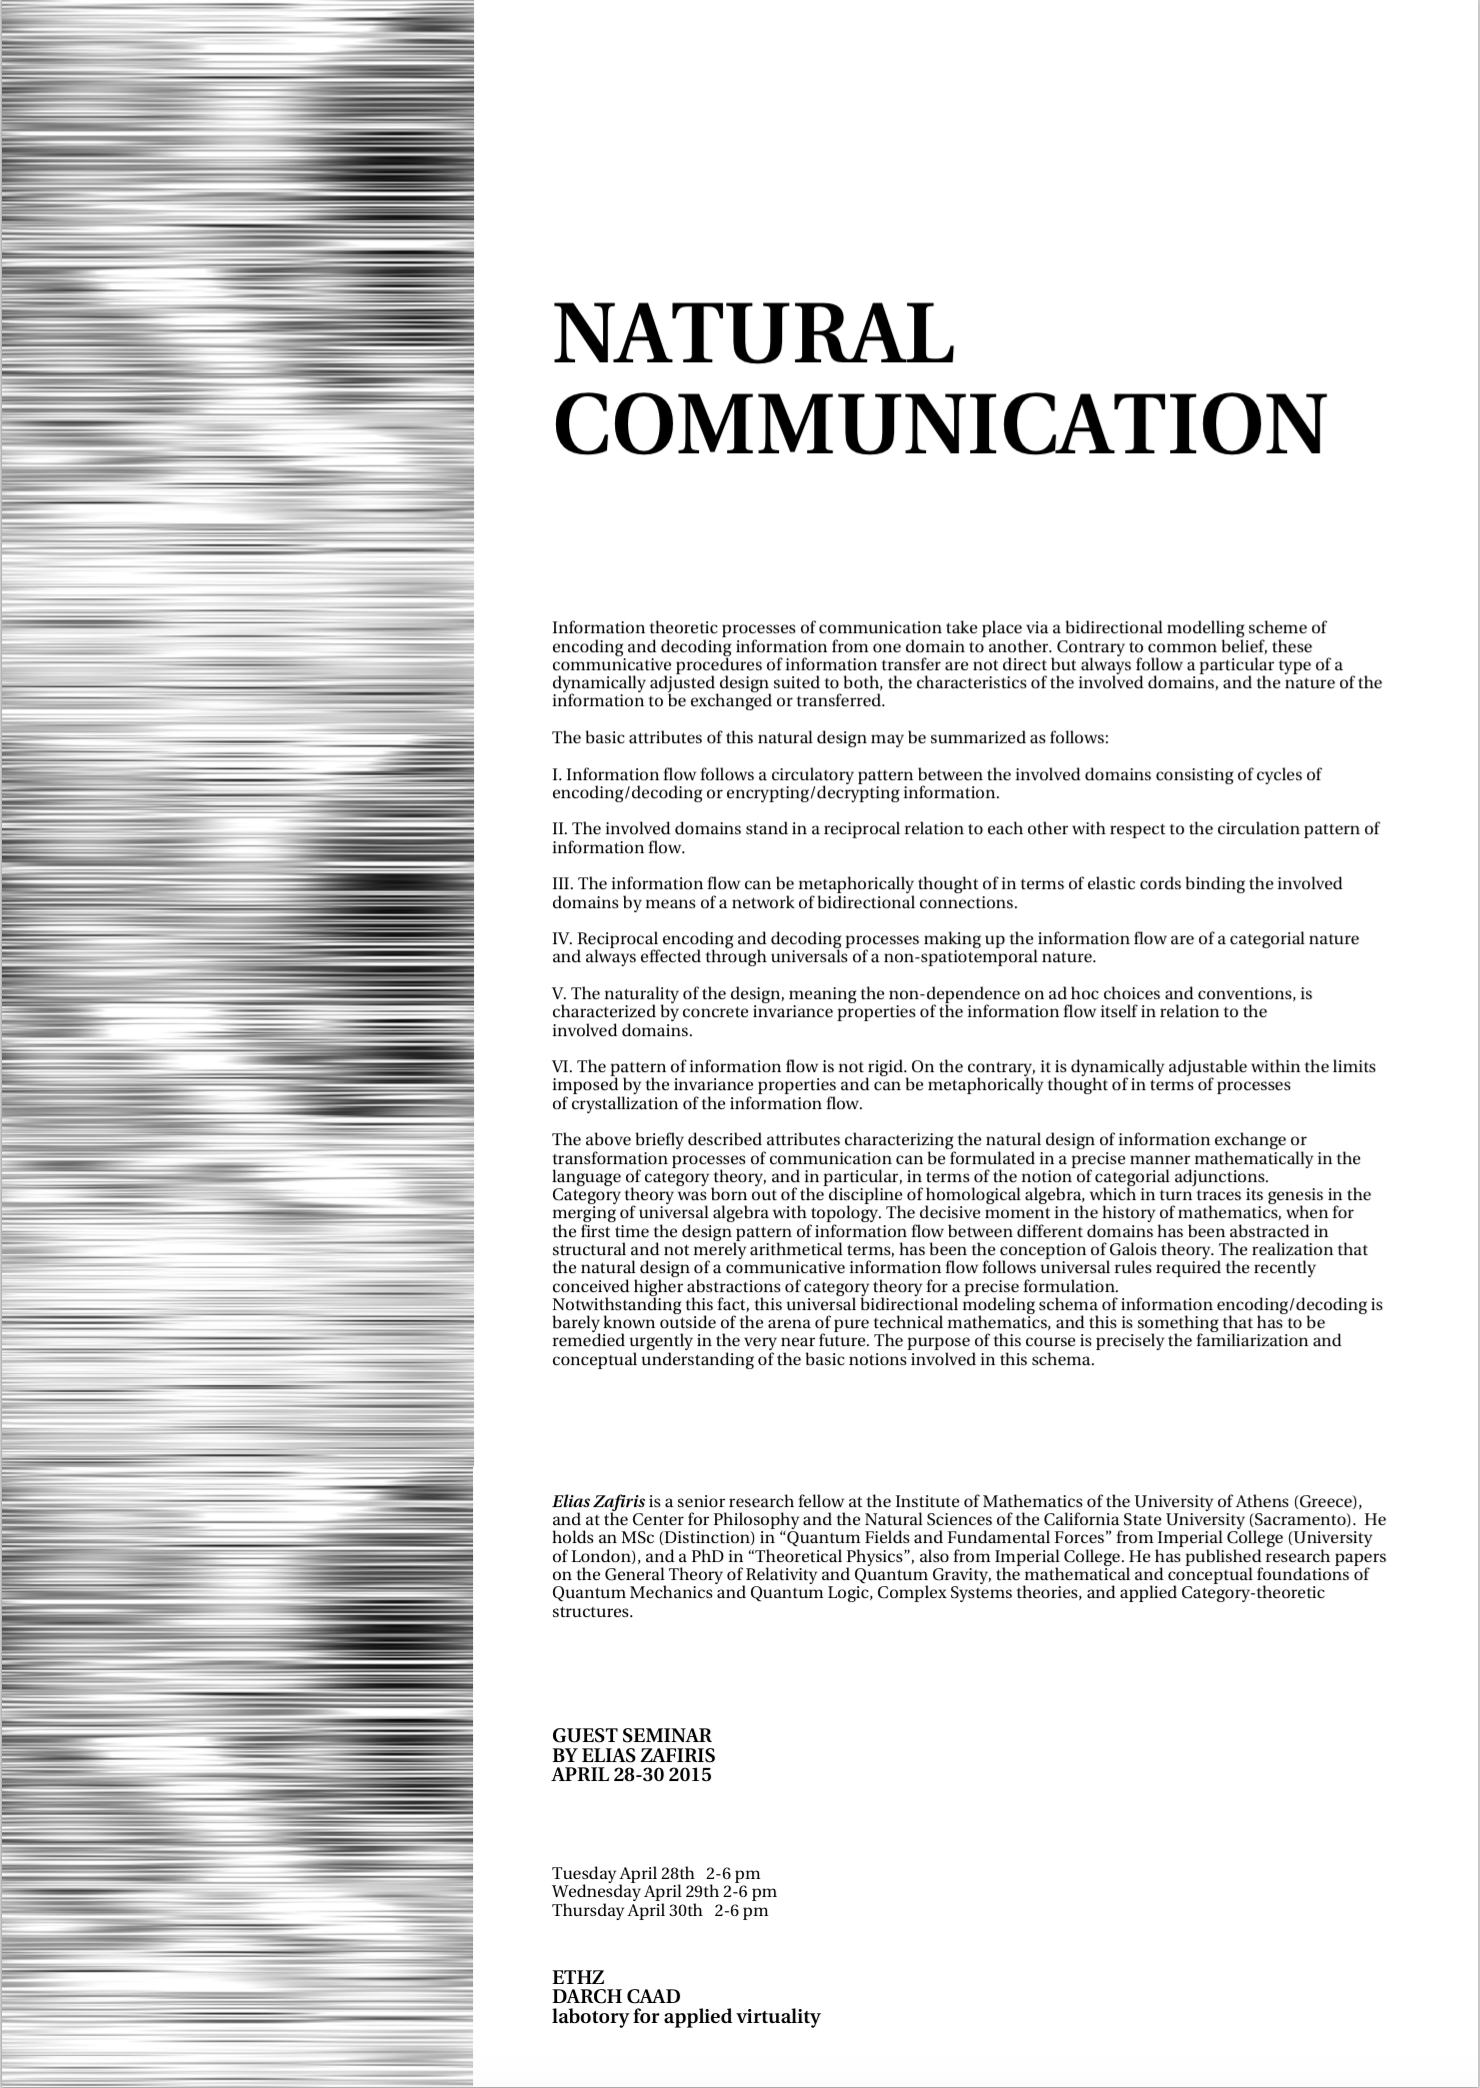 Natural communication mas guest seminar by elias zafiris april 28 natural communication mas guest seminar by elias zafiris april 28 30 2015 the applied virtuality theory lab freerunsca Gallery